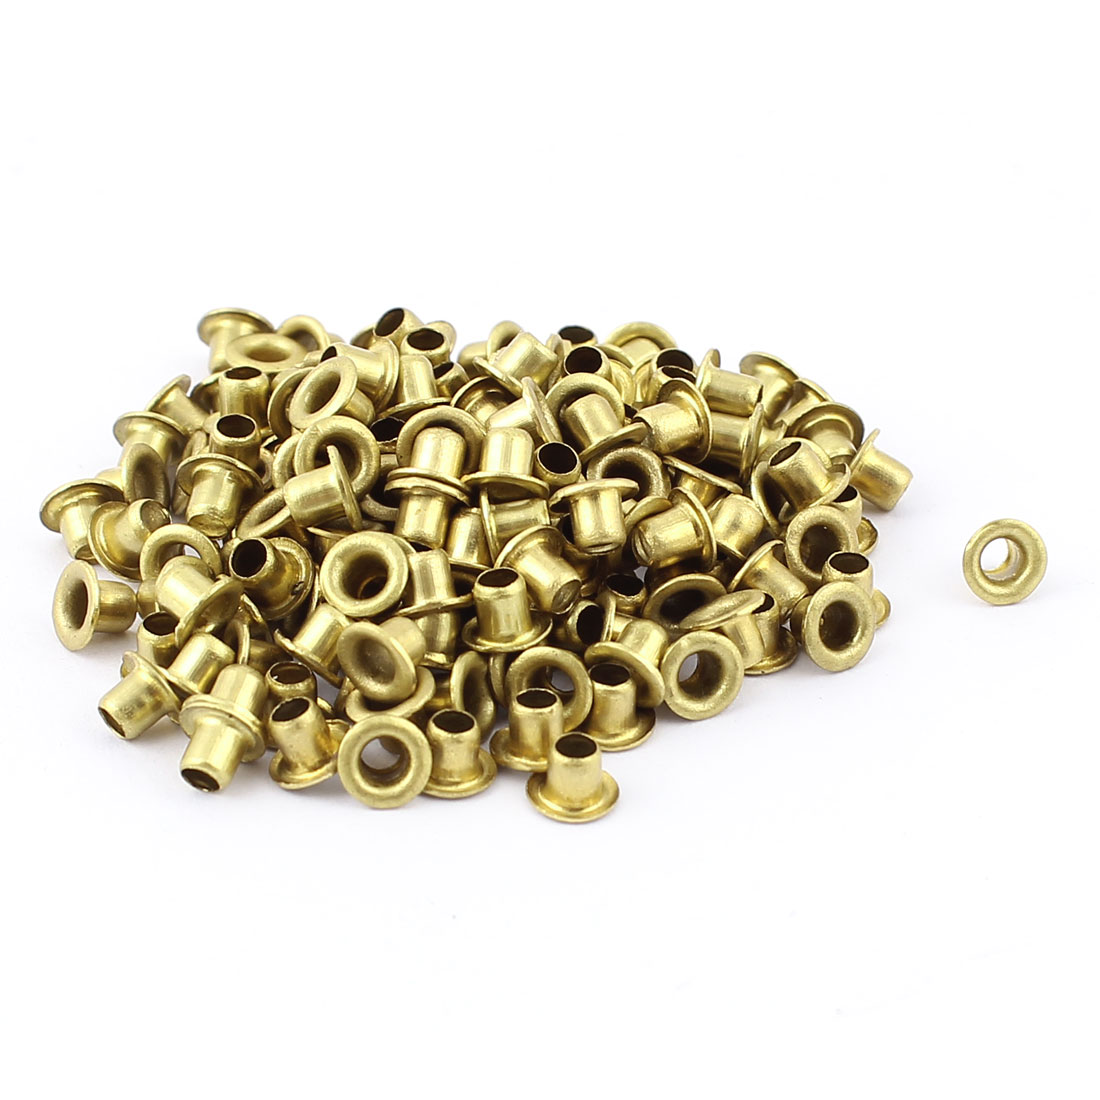 200pcs M3x3 Copper Via Vias Plated Through Hole Rivets Hollow Grommets PCB Circuit Board